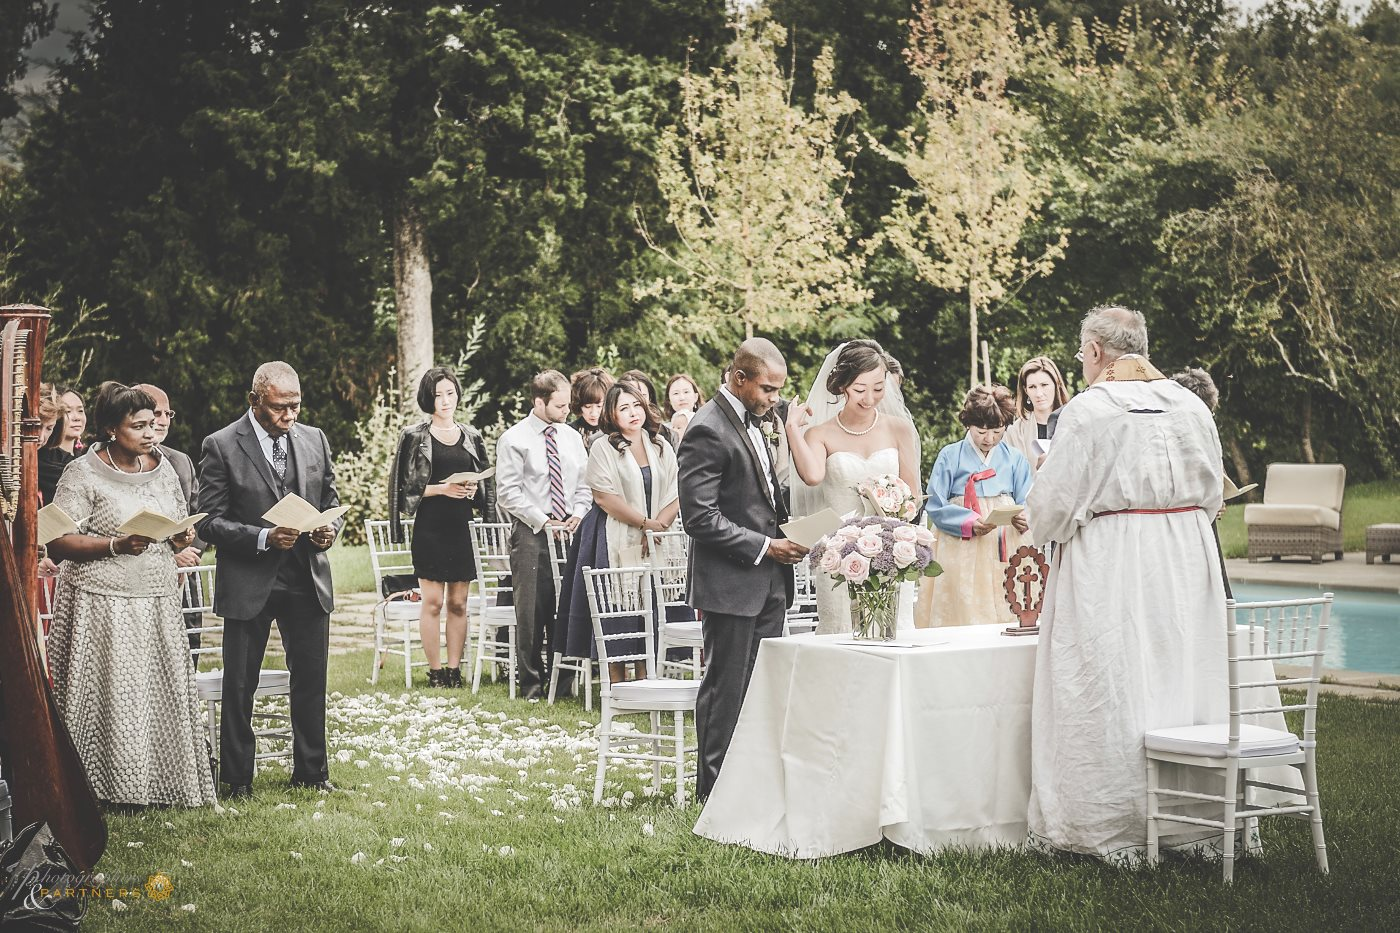 wedding_photos_castelfalfi_08.jpg